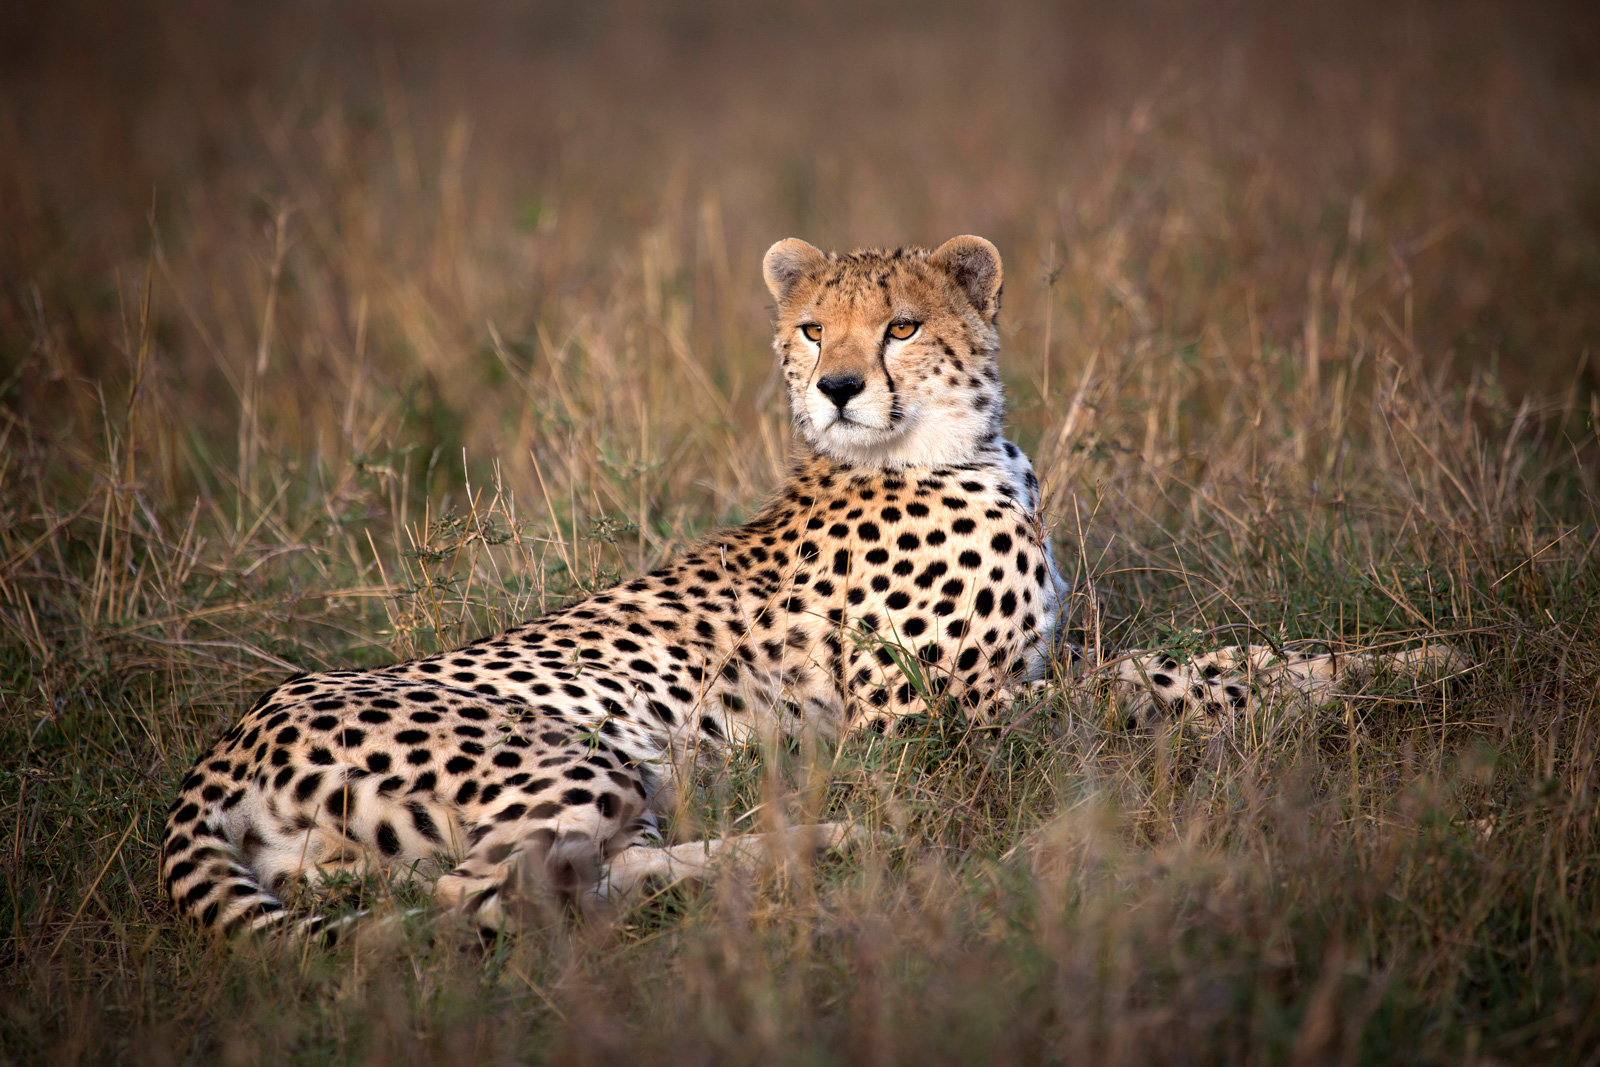 """Like a human fingerprint, every cheetah has a unique pattern of spots © <a href=""""http://bjornpersson.nu/"""" target=""""_blank"""">Björn Persson</a>"""